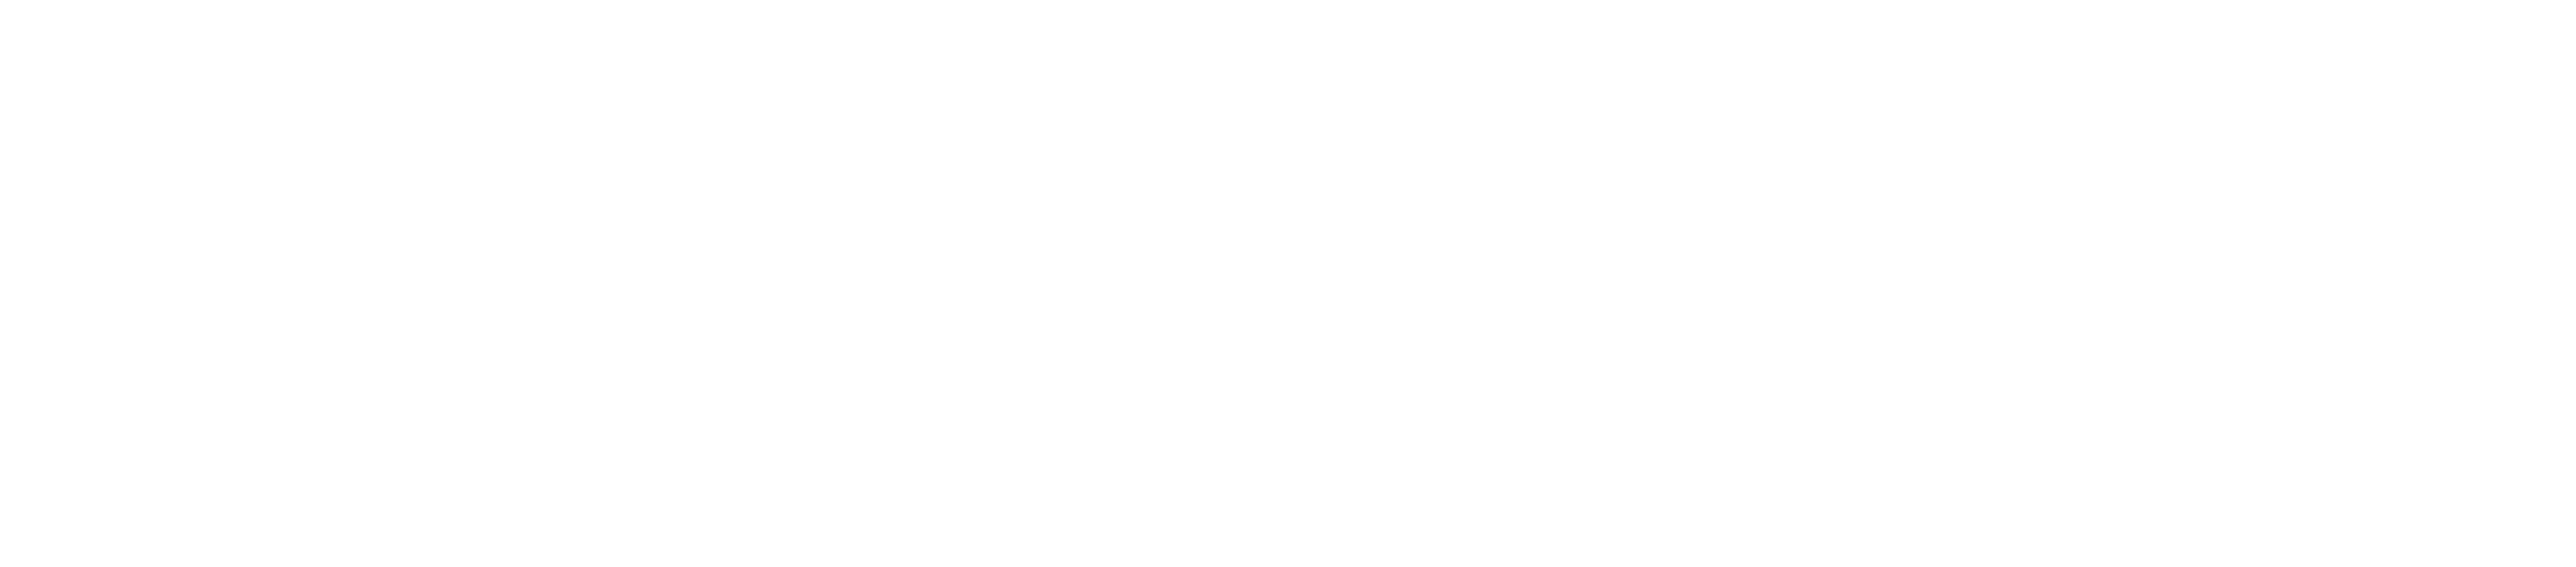 Logo for Recovery Foundation.